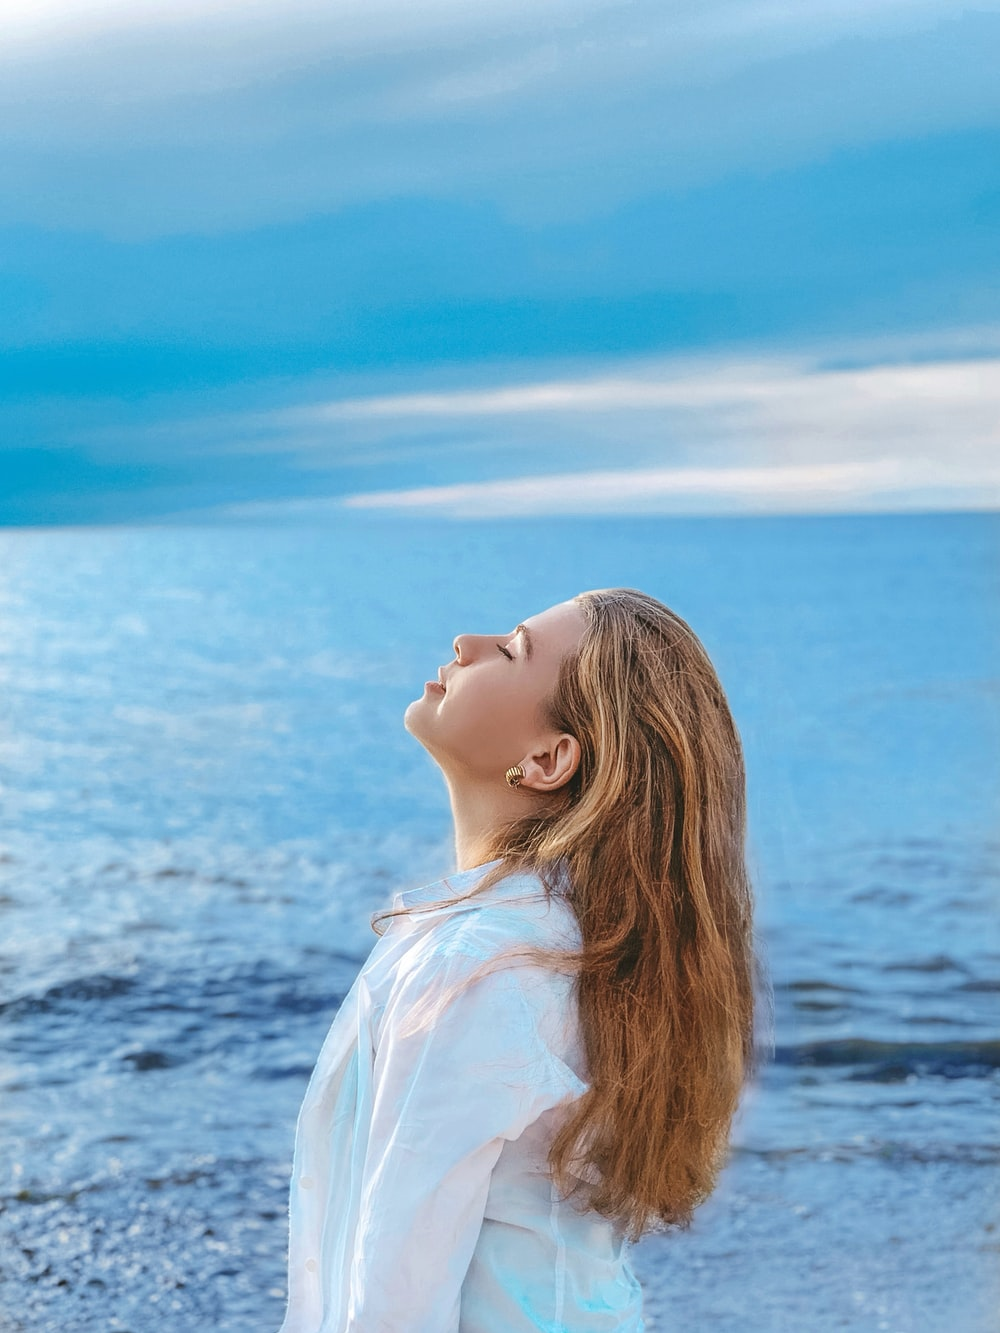 woman in white shirt standing near sea during daytime